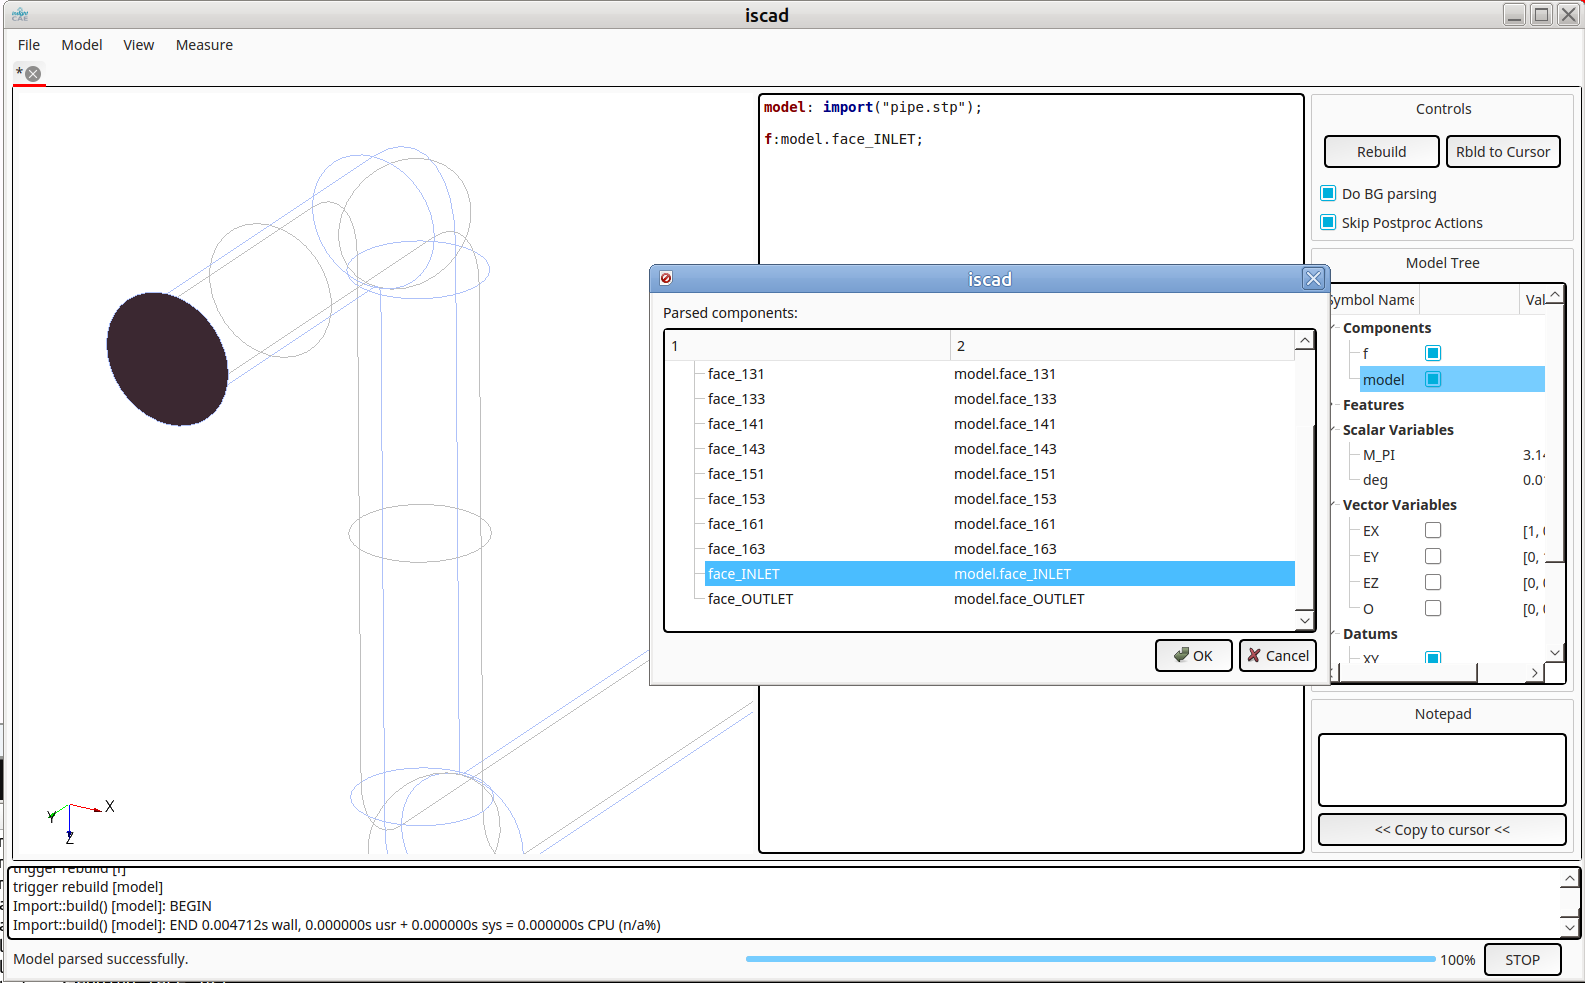 InsightCAE ISCAD import STP with named faces